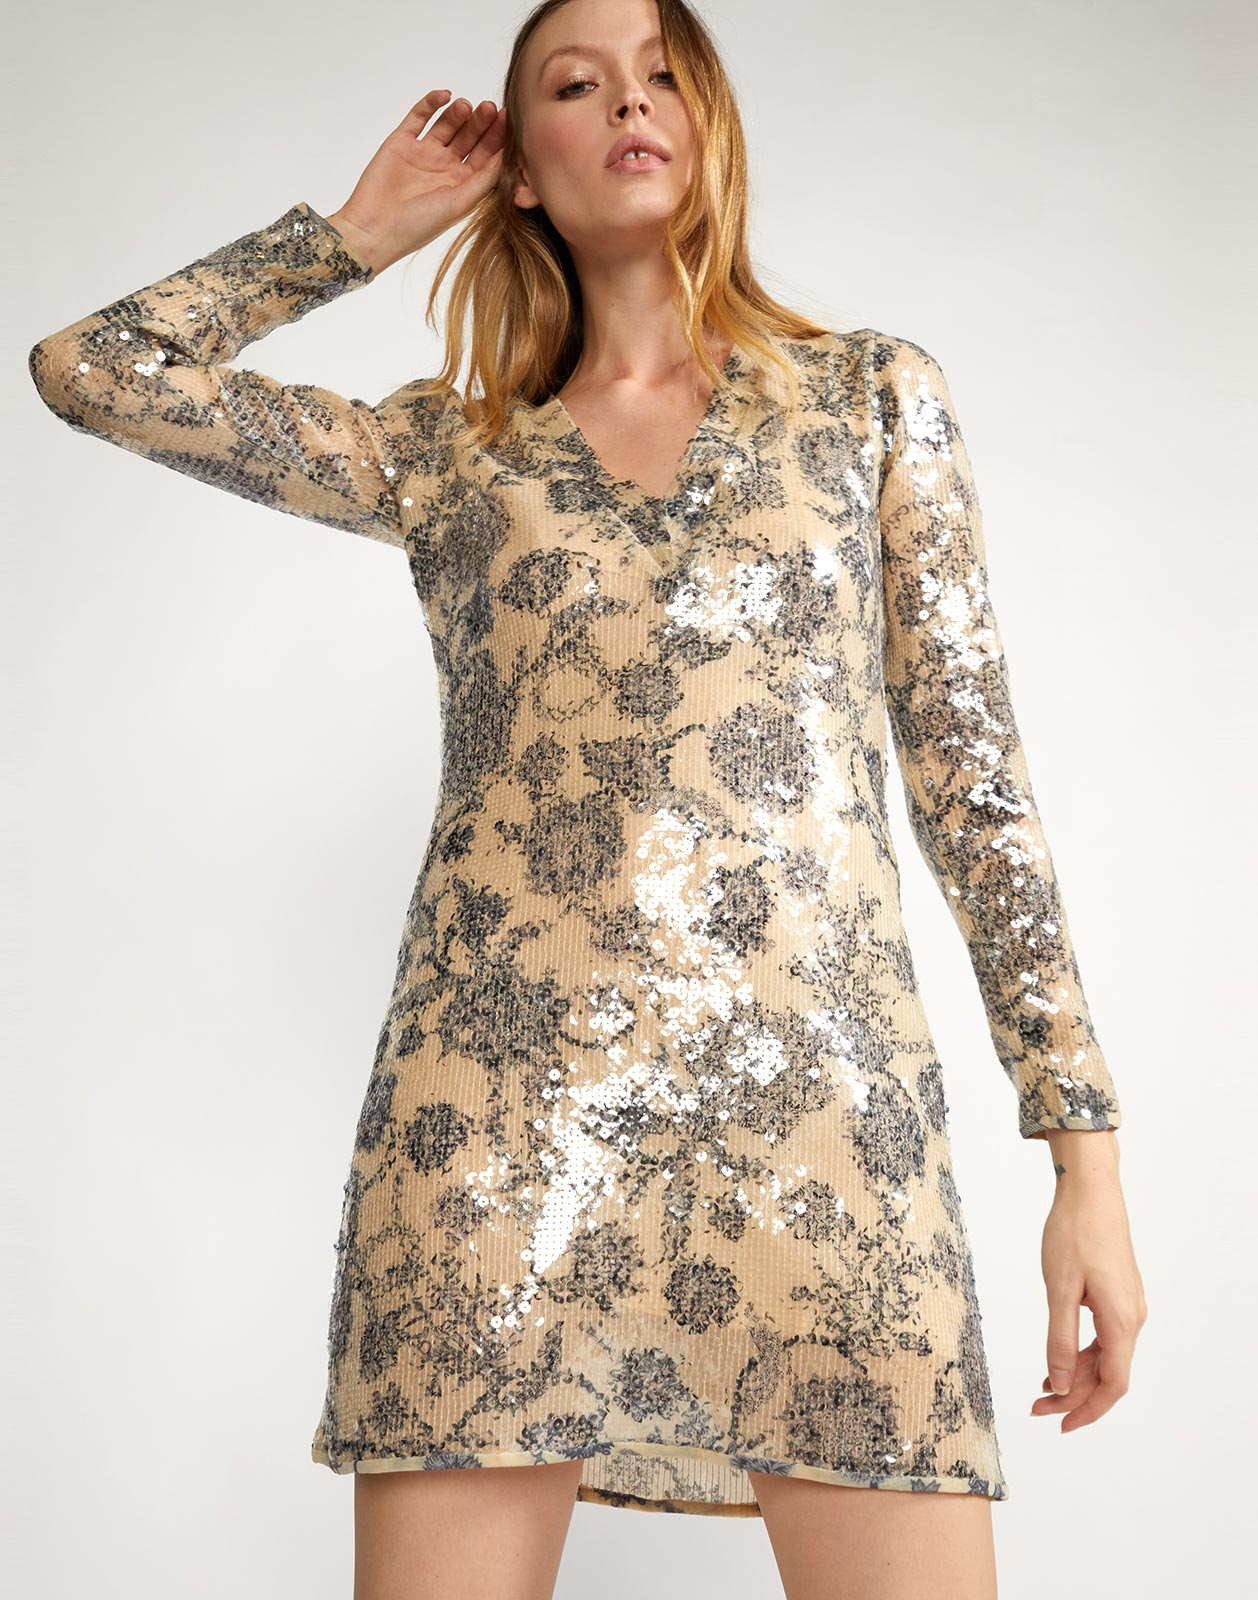 Sequin dress with v-neckline